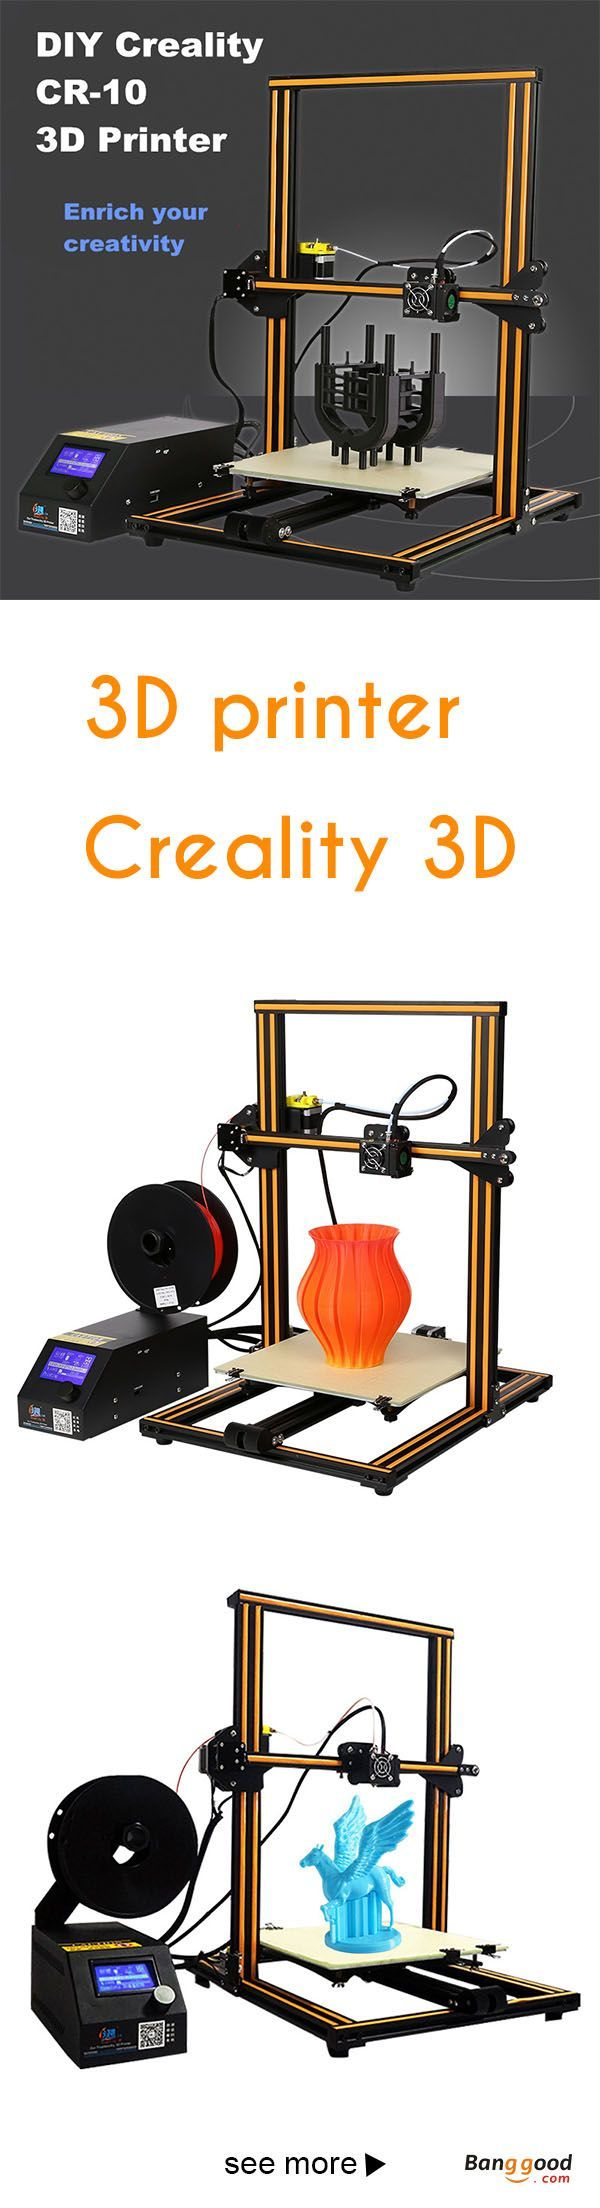 US$494.99 + Free shipping. Creality 3D® CR-10 DIY 3D Printer Kit 300*300*400mm Printing Size 1.75mm 0.4mm Nozzle.  The printer comes 90% assembled as in description 10% remaining assembly is really easy, even a child can do that. #Hot  sale, click for more!